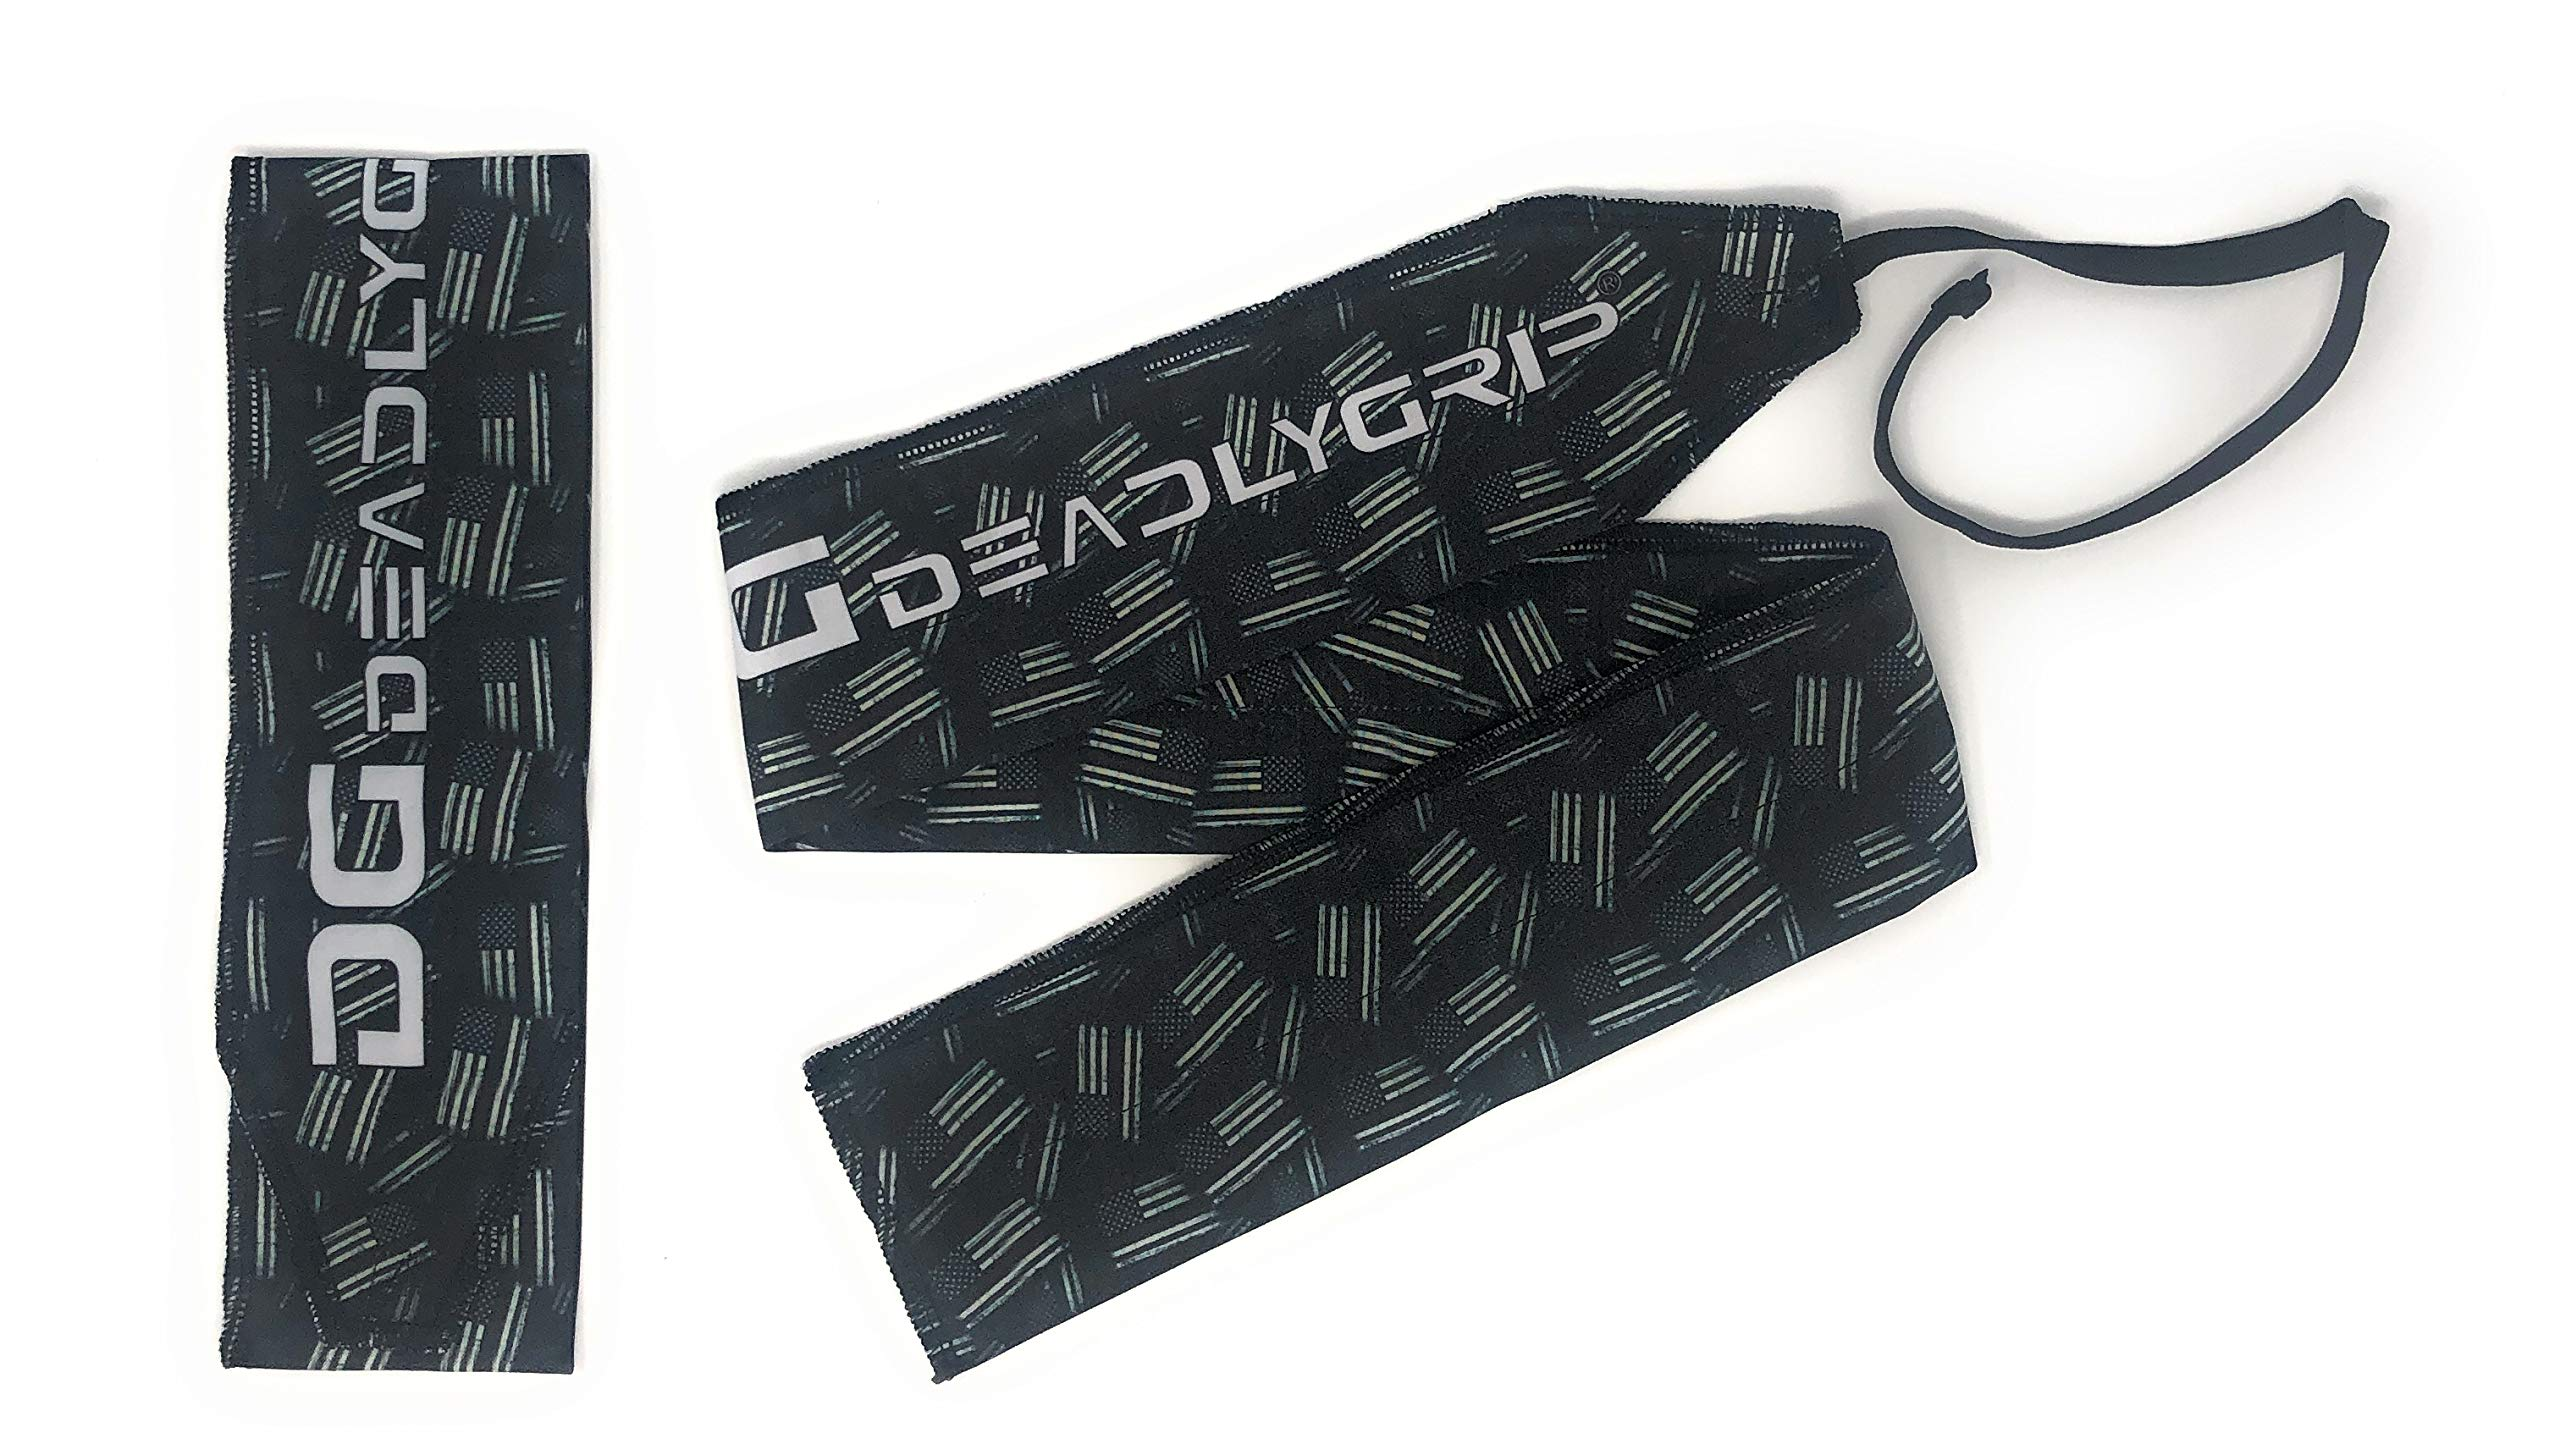 Deadly Grip DG Wrist Wrap. for Maximum Wrist Support Special for Crossfit, Power Lifting, Calisthenics and More. (Flag)